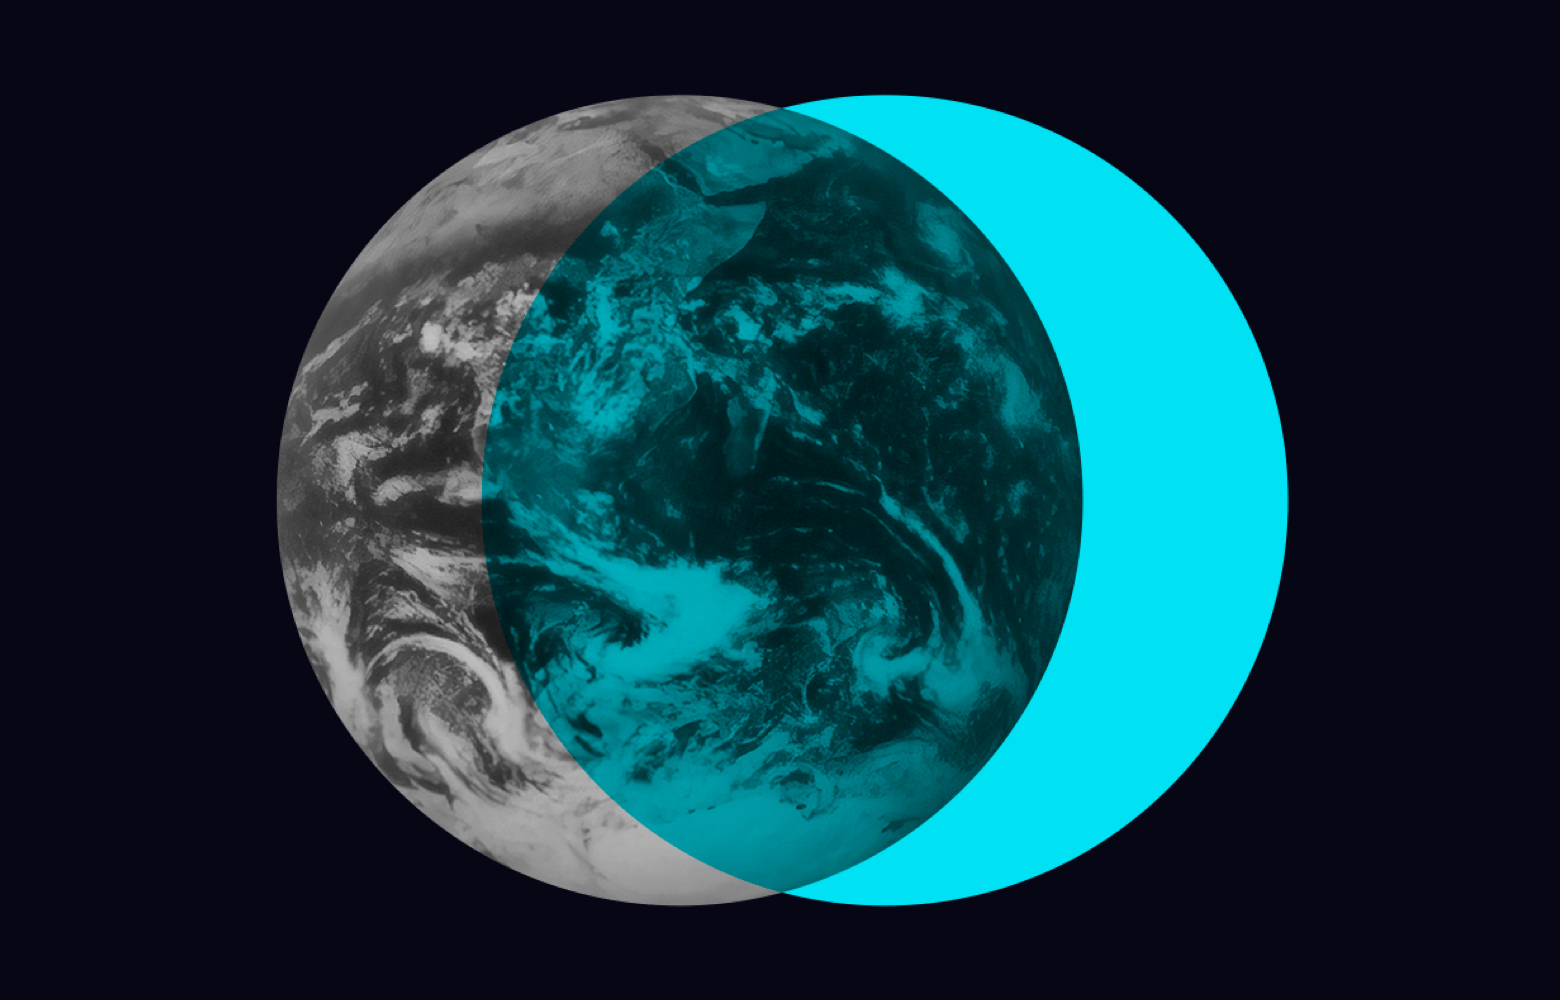 Black & white earth from space with cyan circle over.